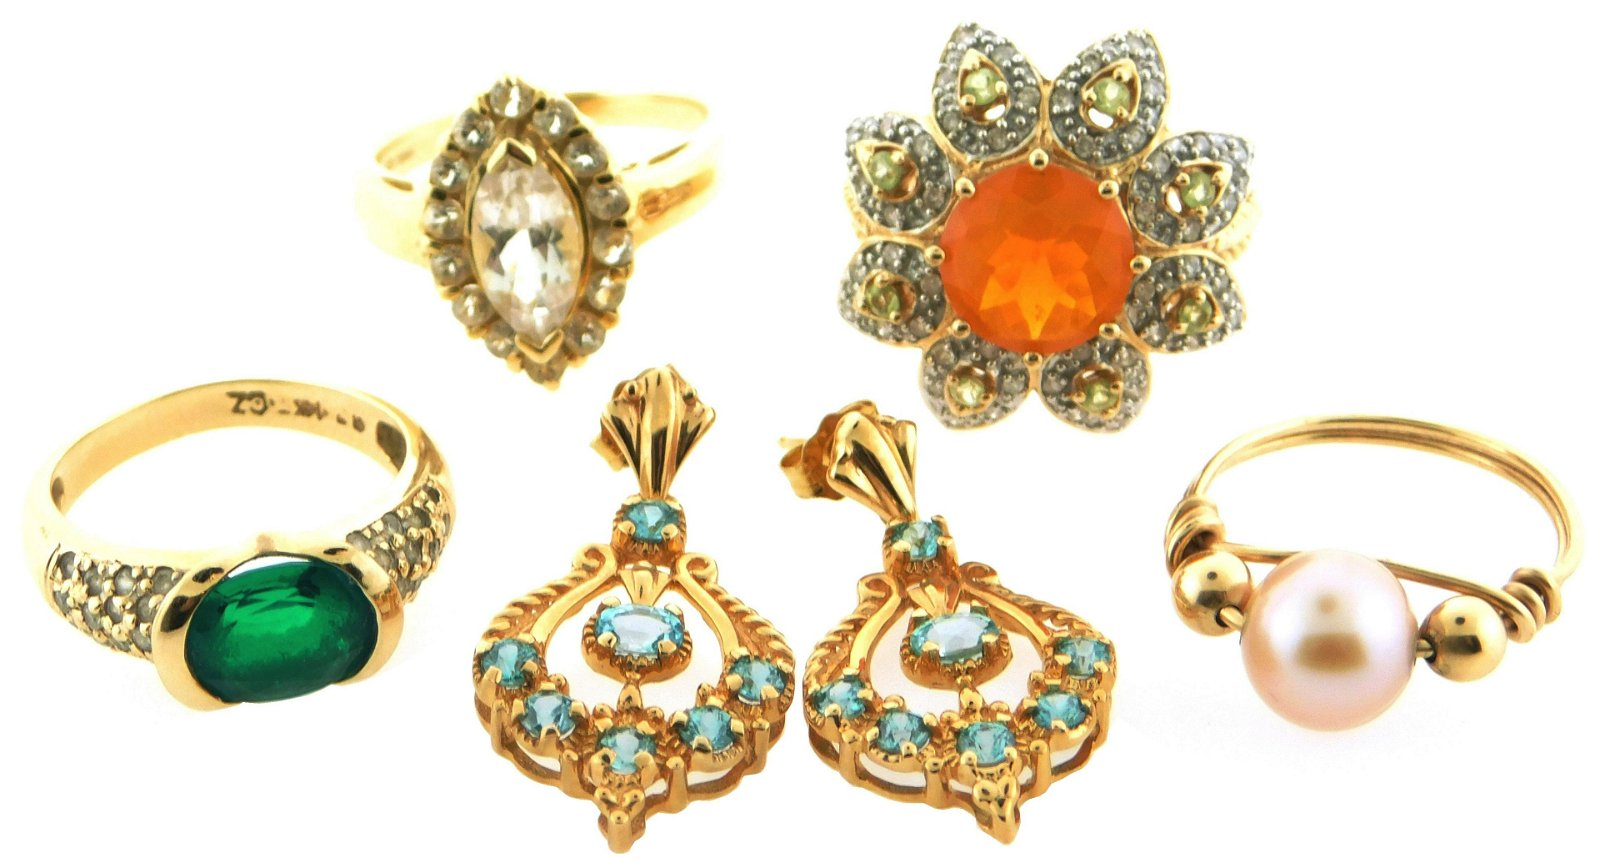 JEWELRY: Five yellow gold pieces, including four rings